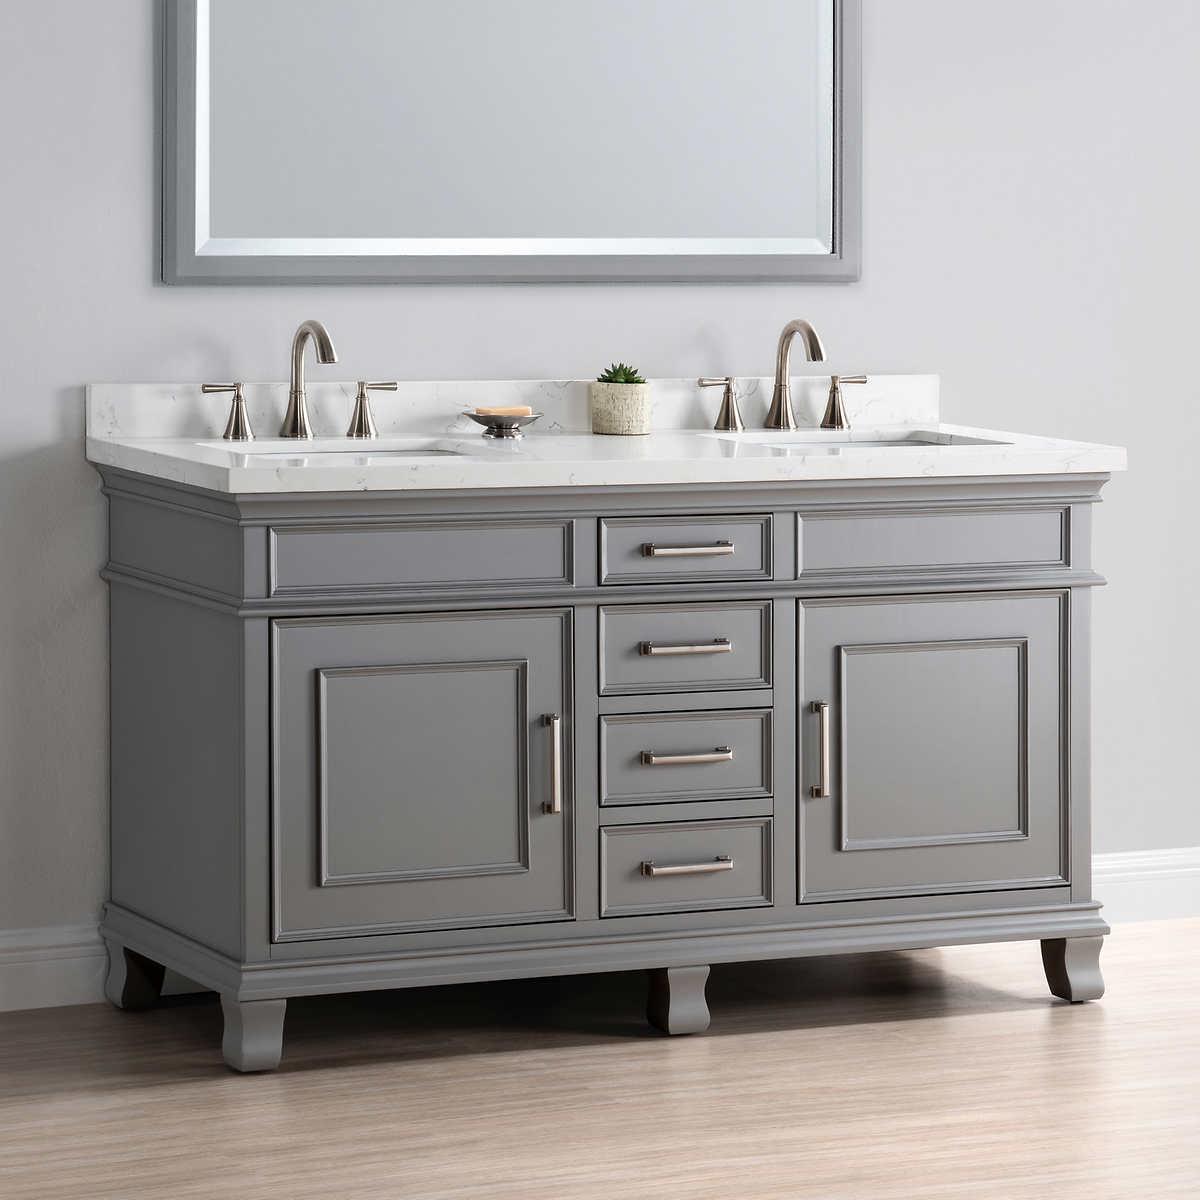 Image of: 60 Double Sink Vanity Ideas